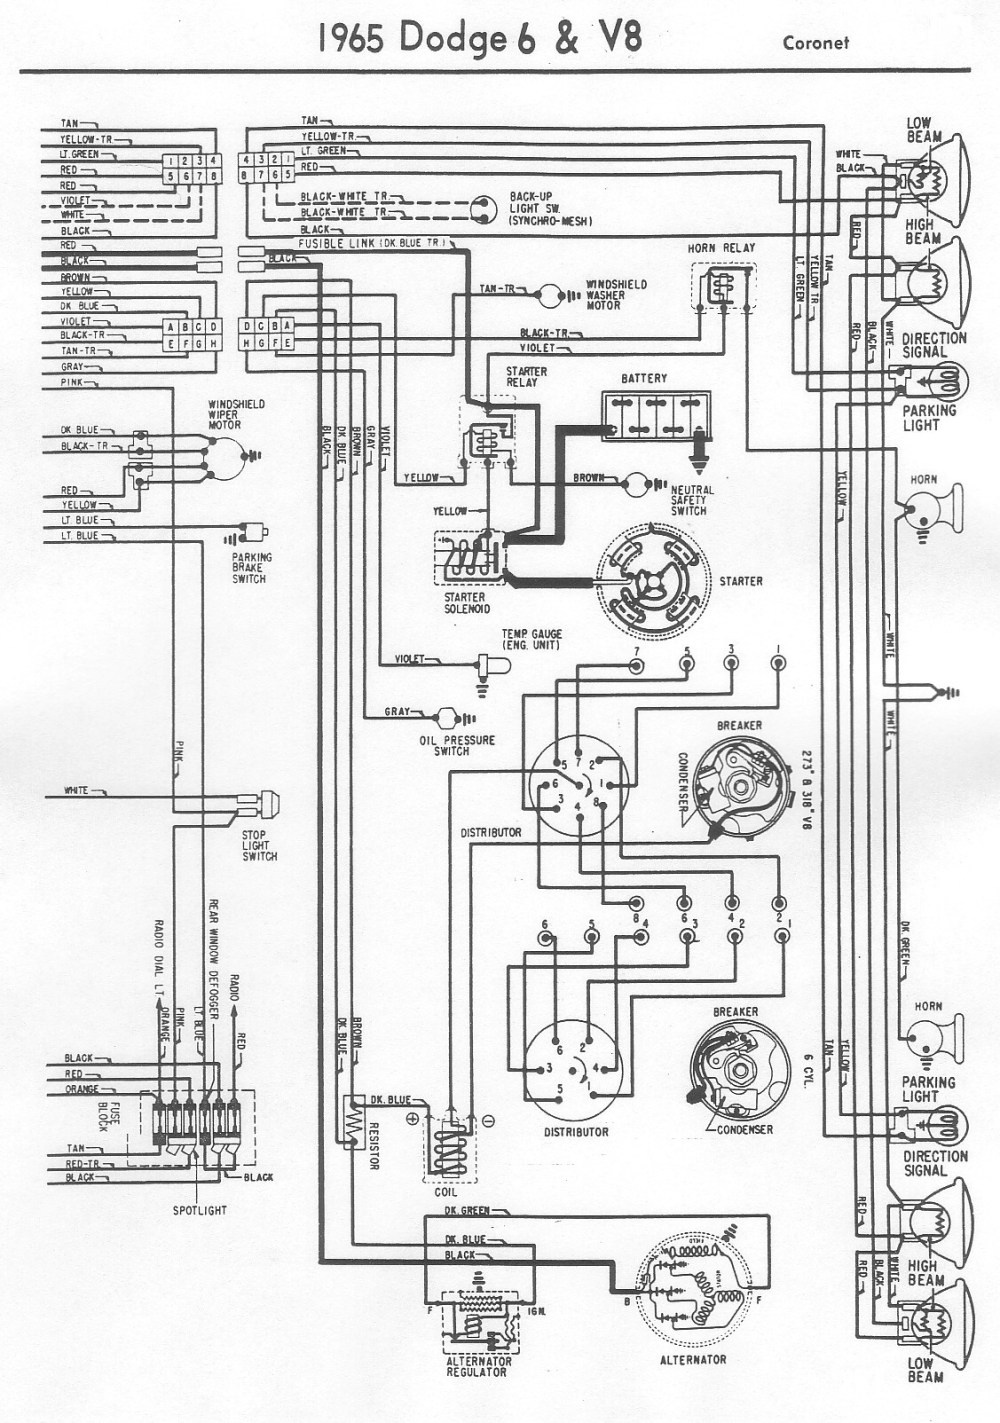 medium resolution of 1964 chrysler 300 wiring diagram wiring diagram world rh 44 fuenfuhrtee in kiribati de 1965 chrysler 300 wiring diagram 1965 chrysler 300 wiring diagram